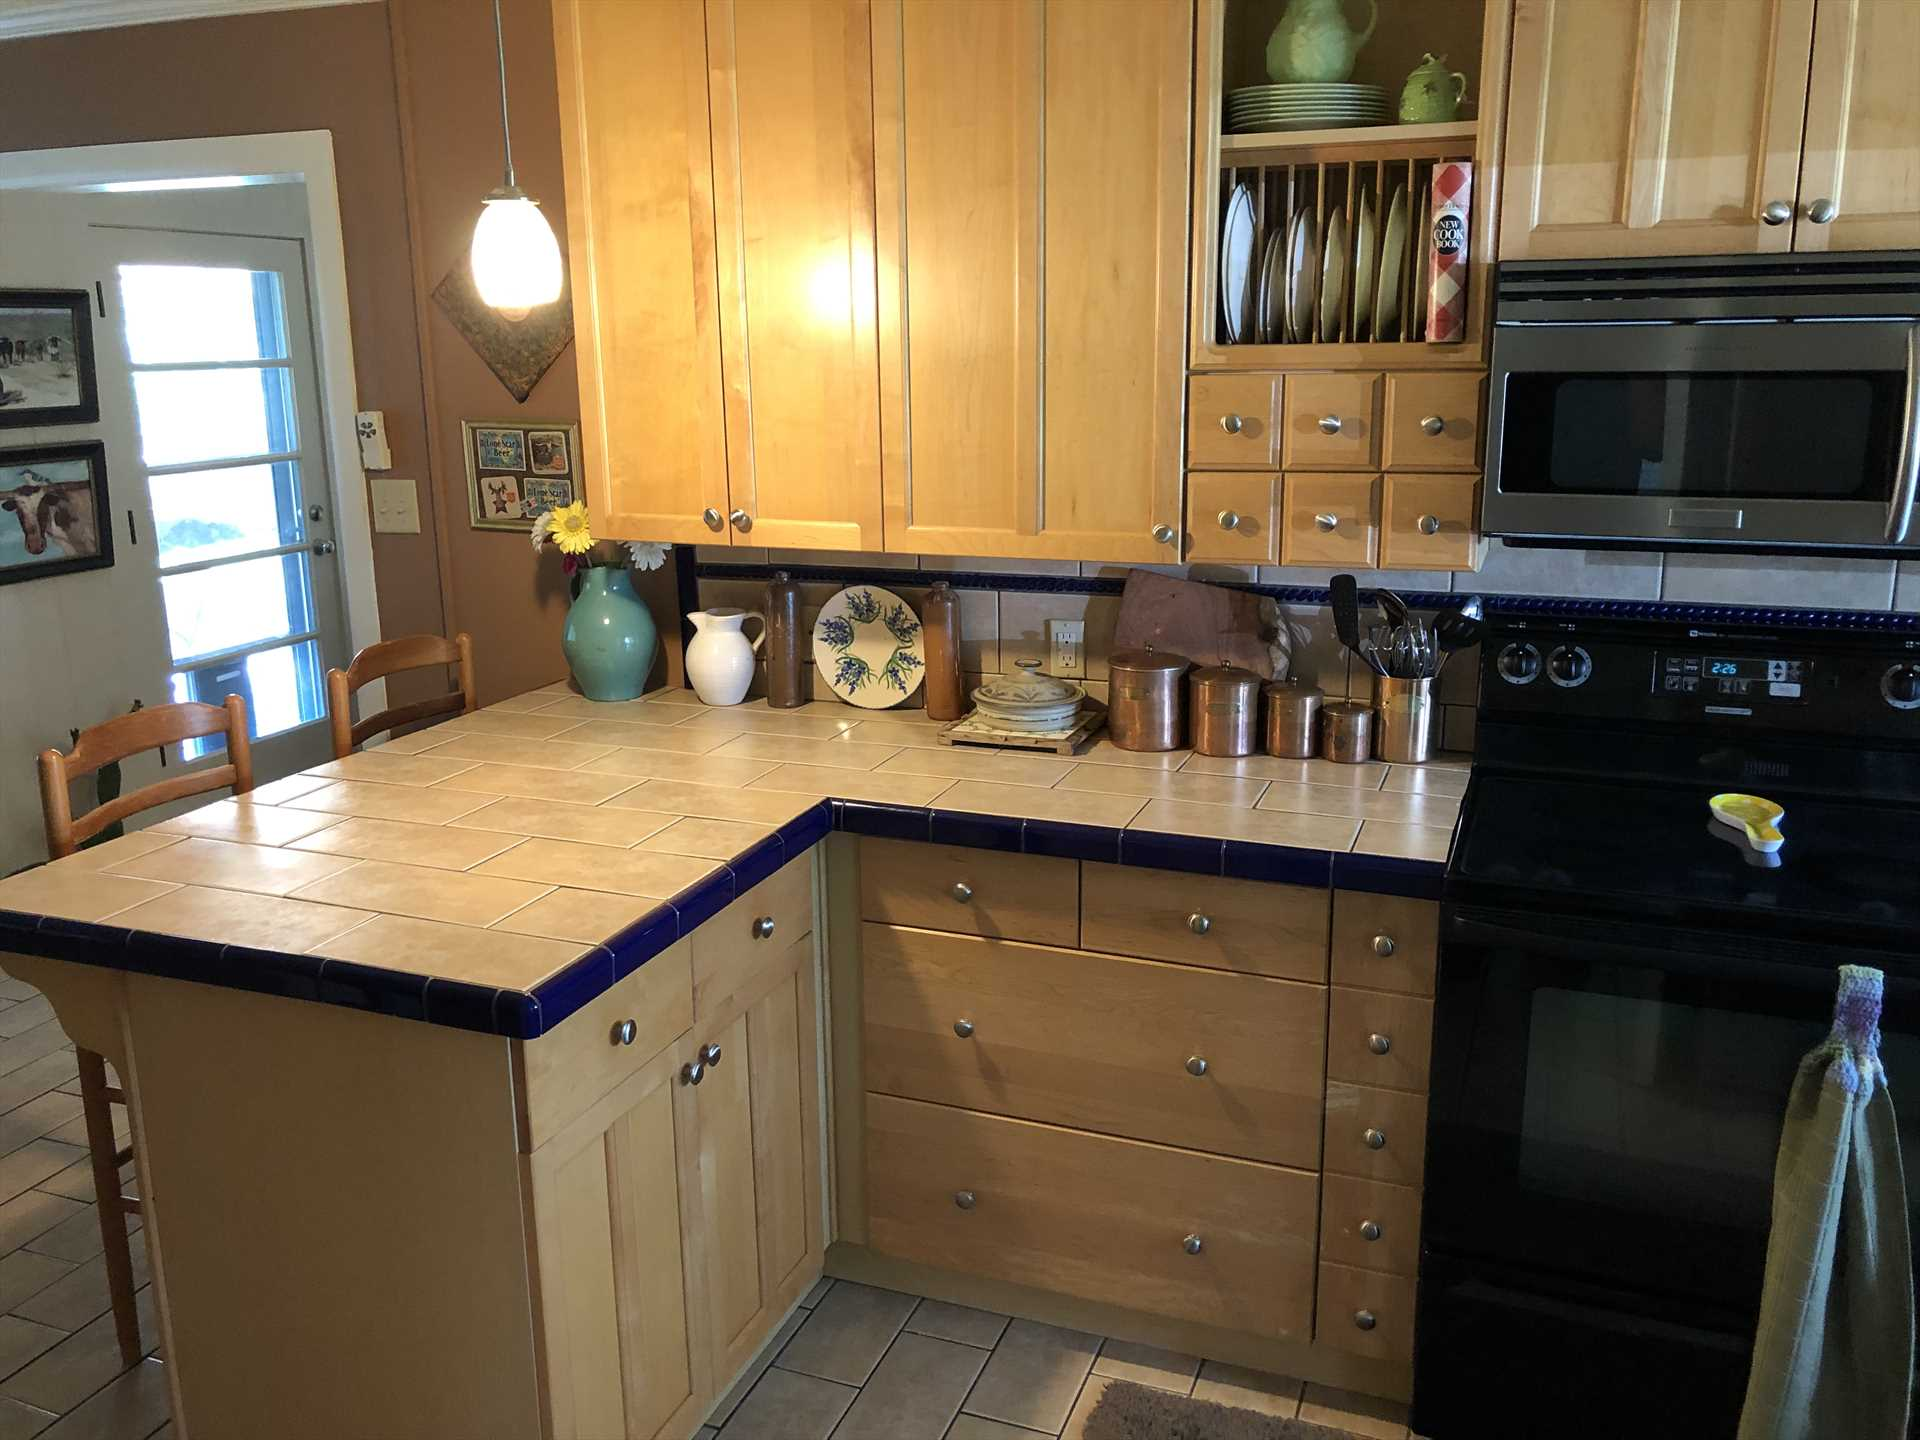 Full kitchen? Just ask our recent guest Veronica: